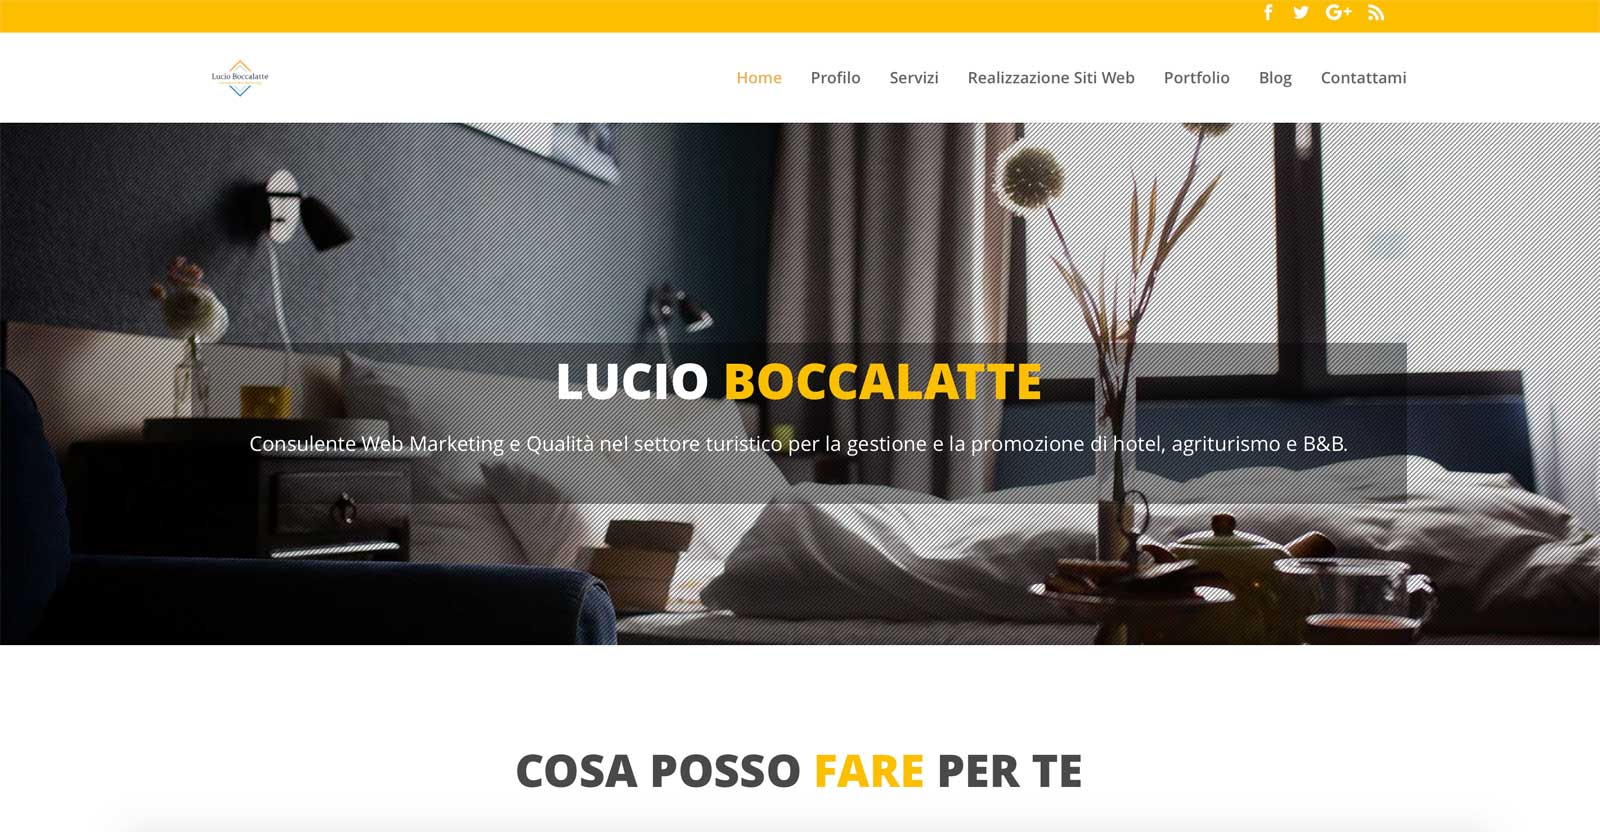 Lucio Boccalatte consulente web marketing per hotel